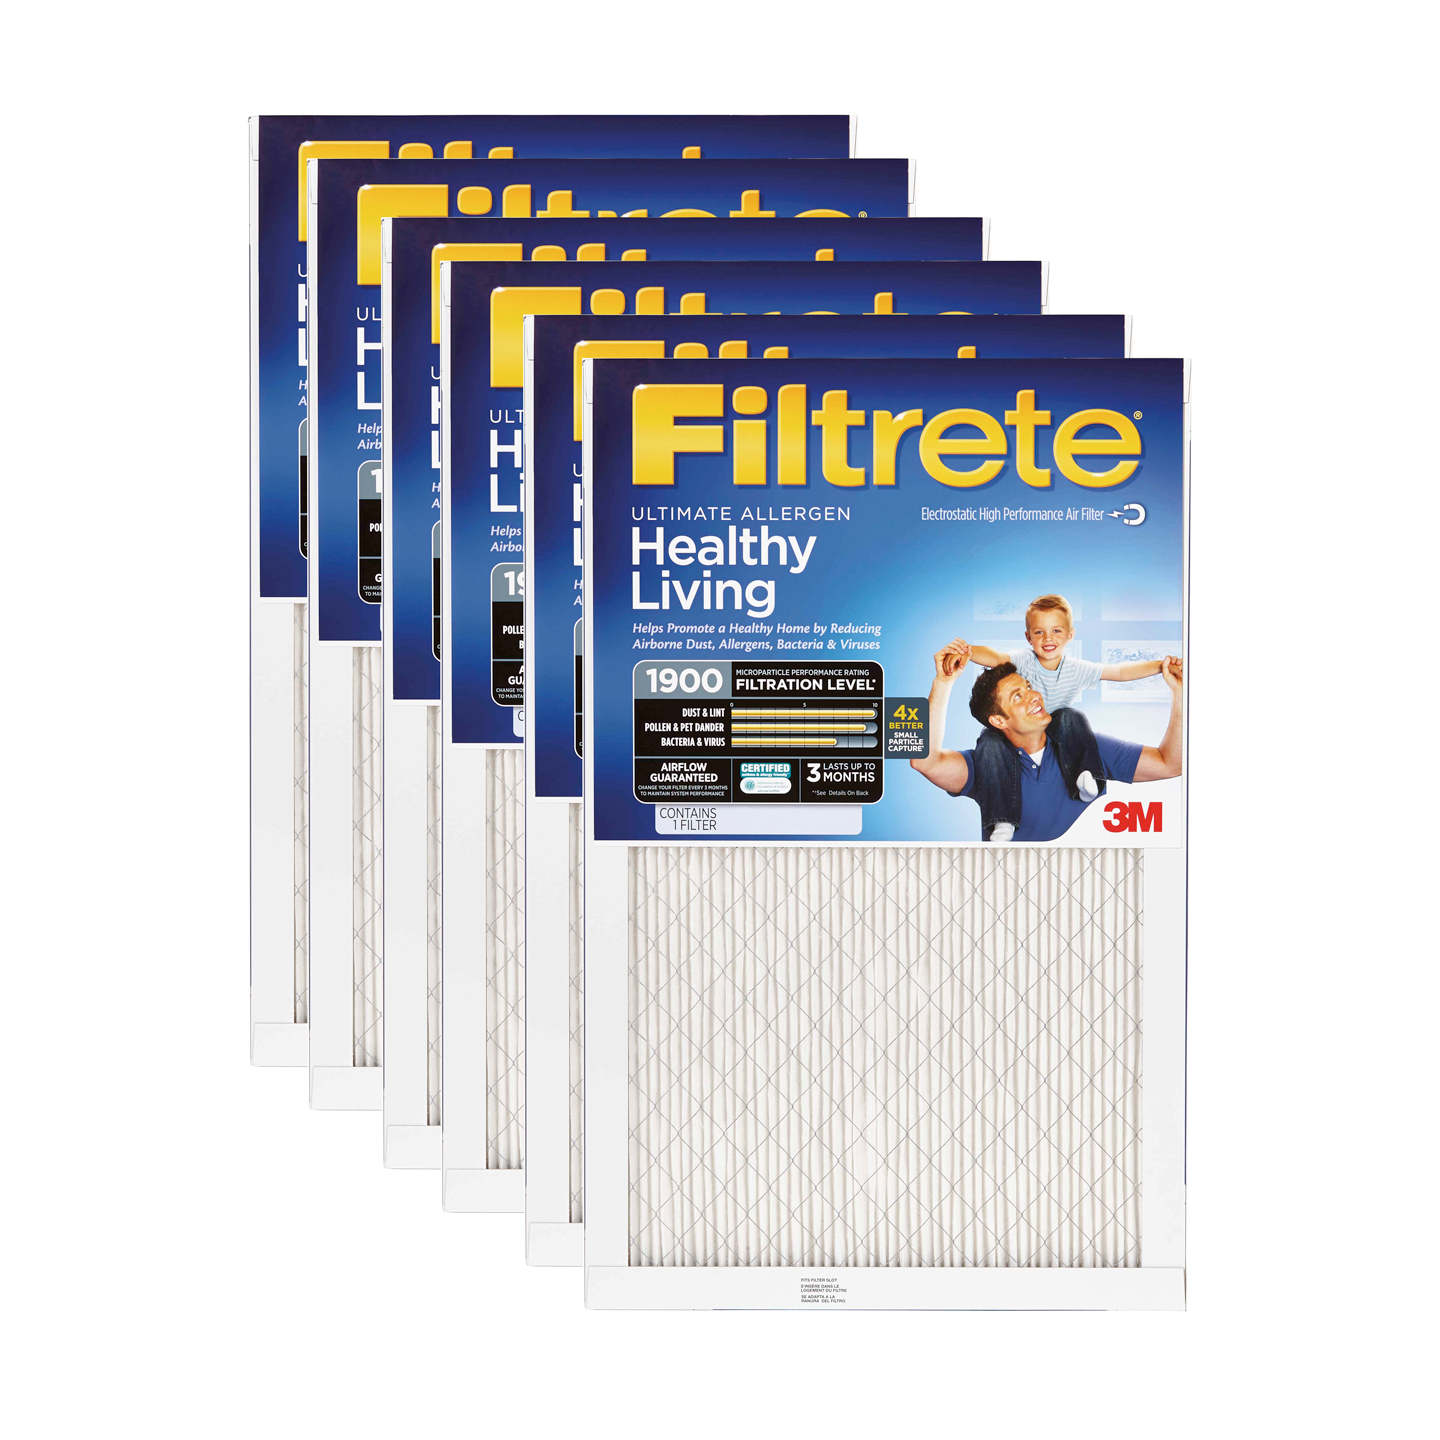 Filtrete 1900 Ultimate Allergen Healthy Living Filter - 14x14x1 (6-Pack) FILTRETE_ULTIMATE_BLUE_14x14x1_6_PACK